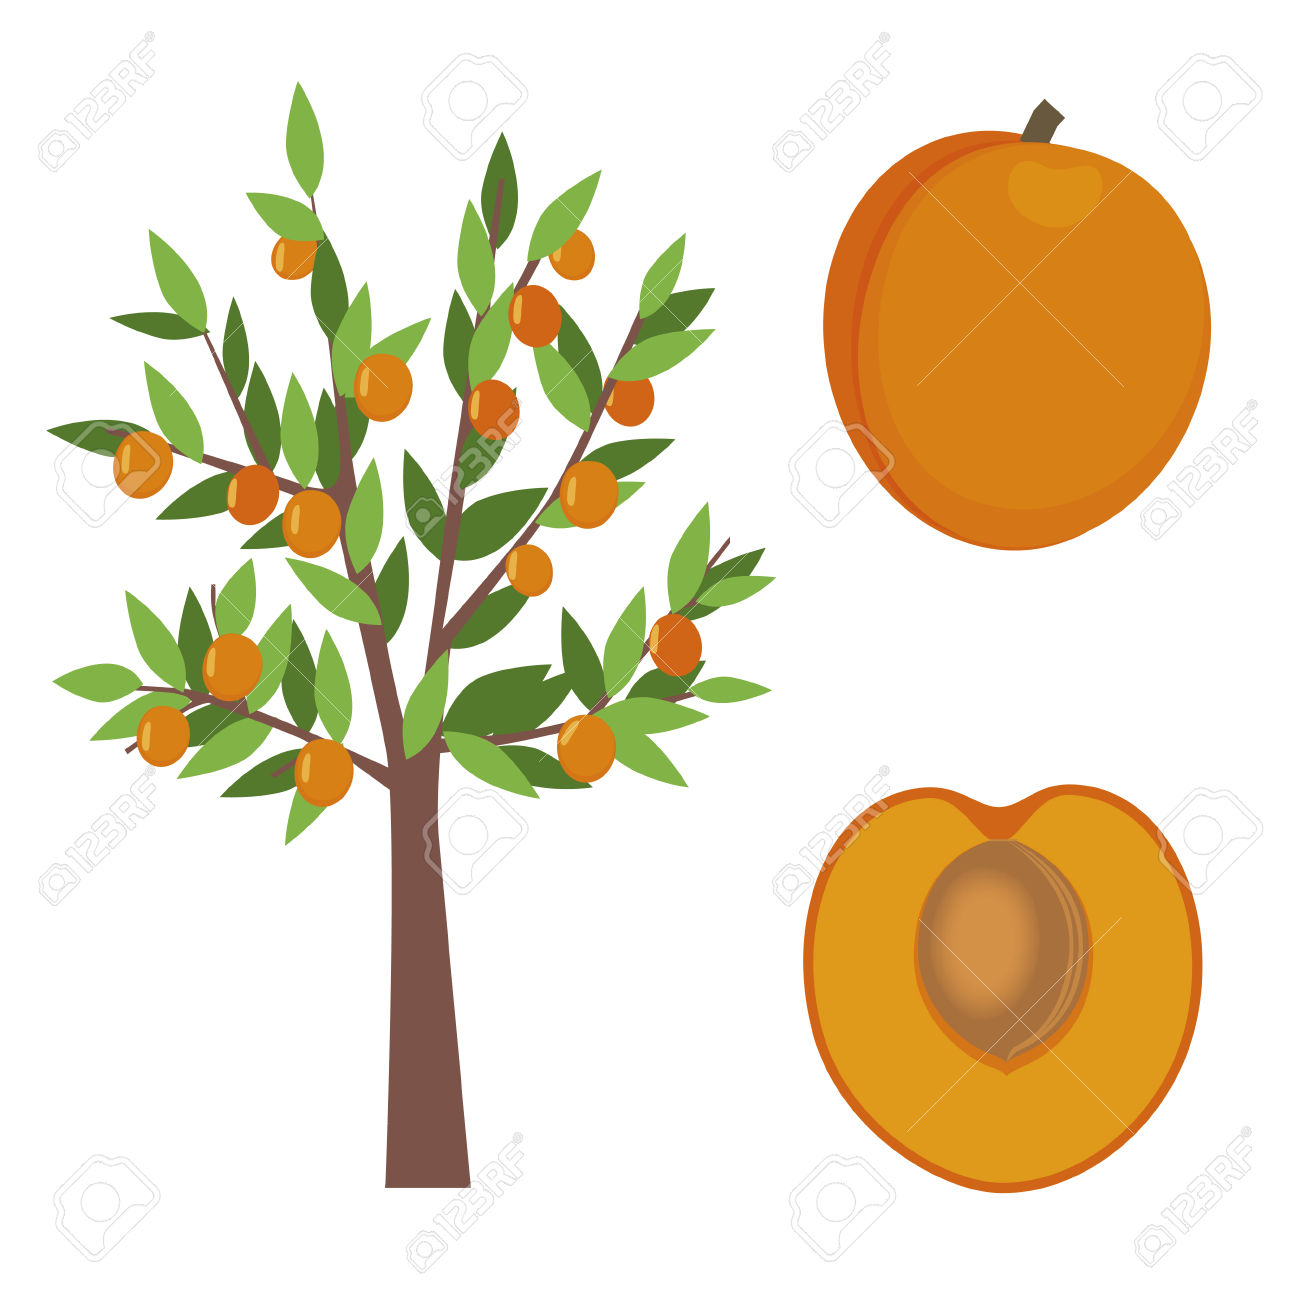 Apricot Tree clipart #16, Download drawings